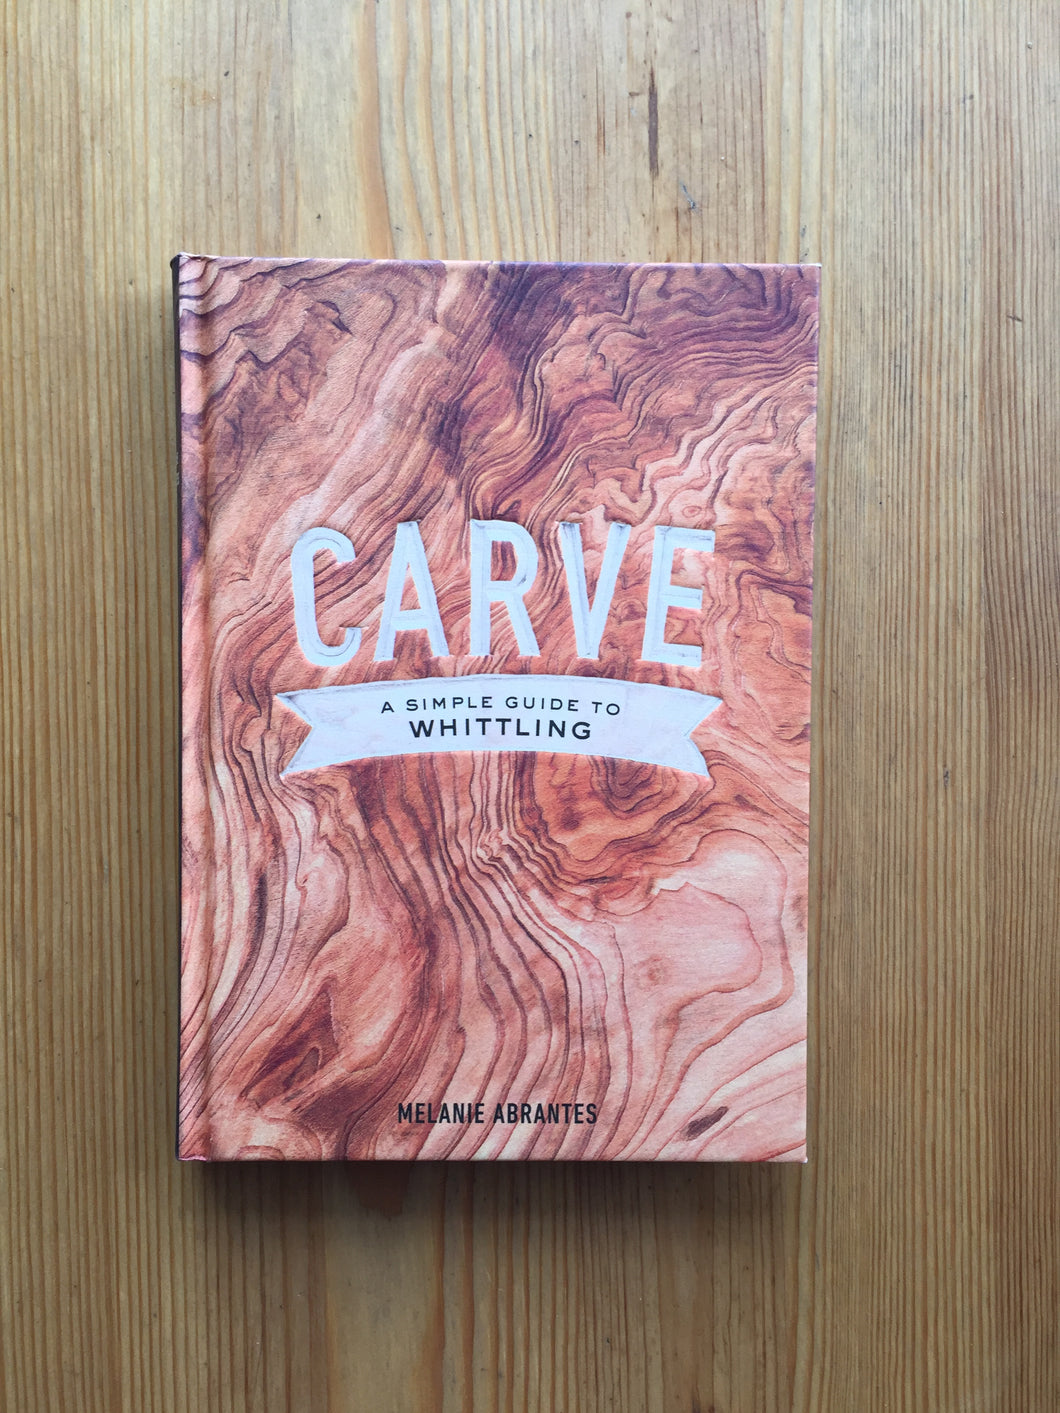 Carve- A Simple Guide to Whittling Book by Melanie Abrantes